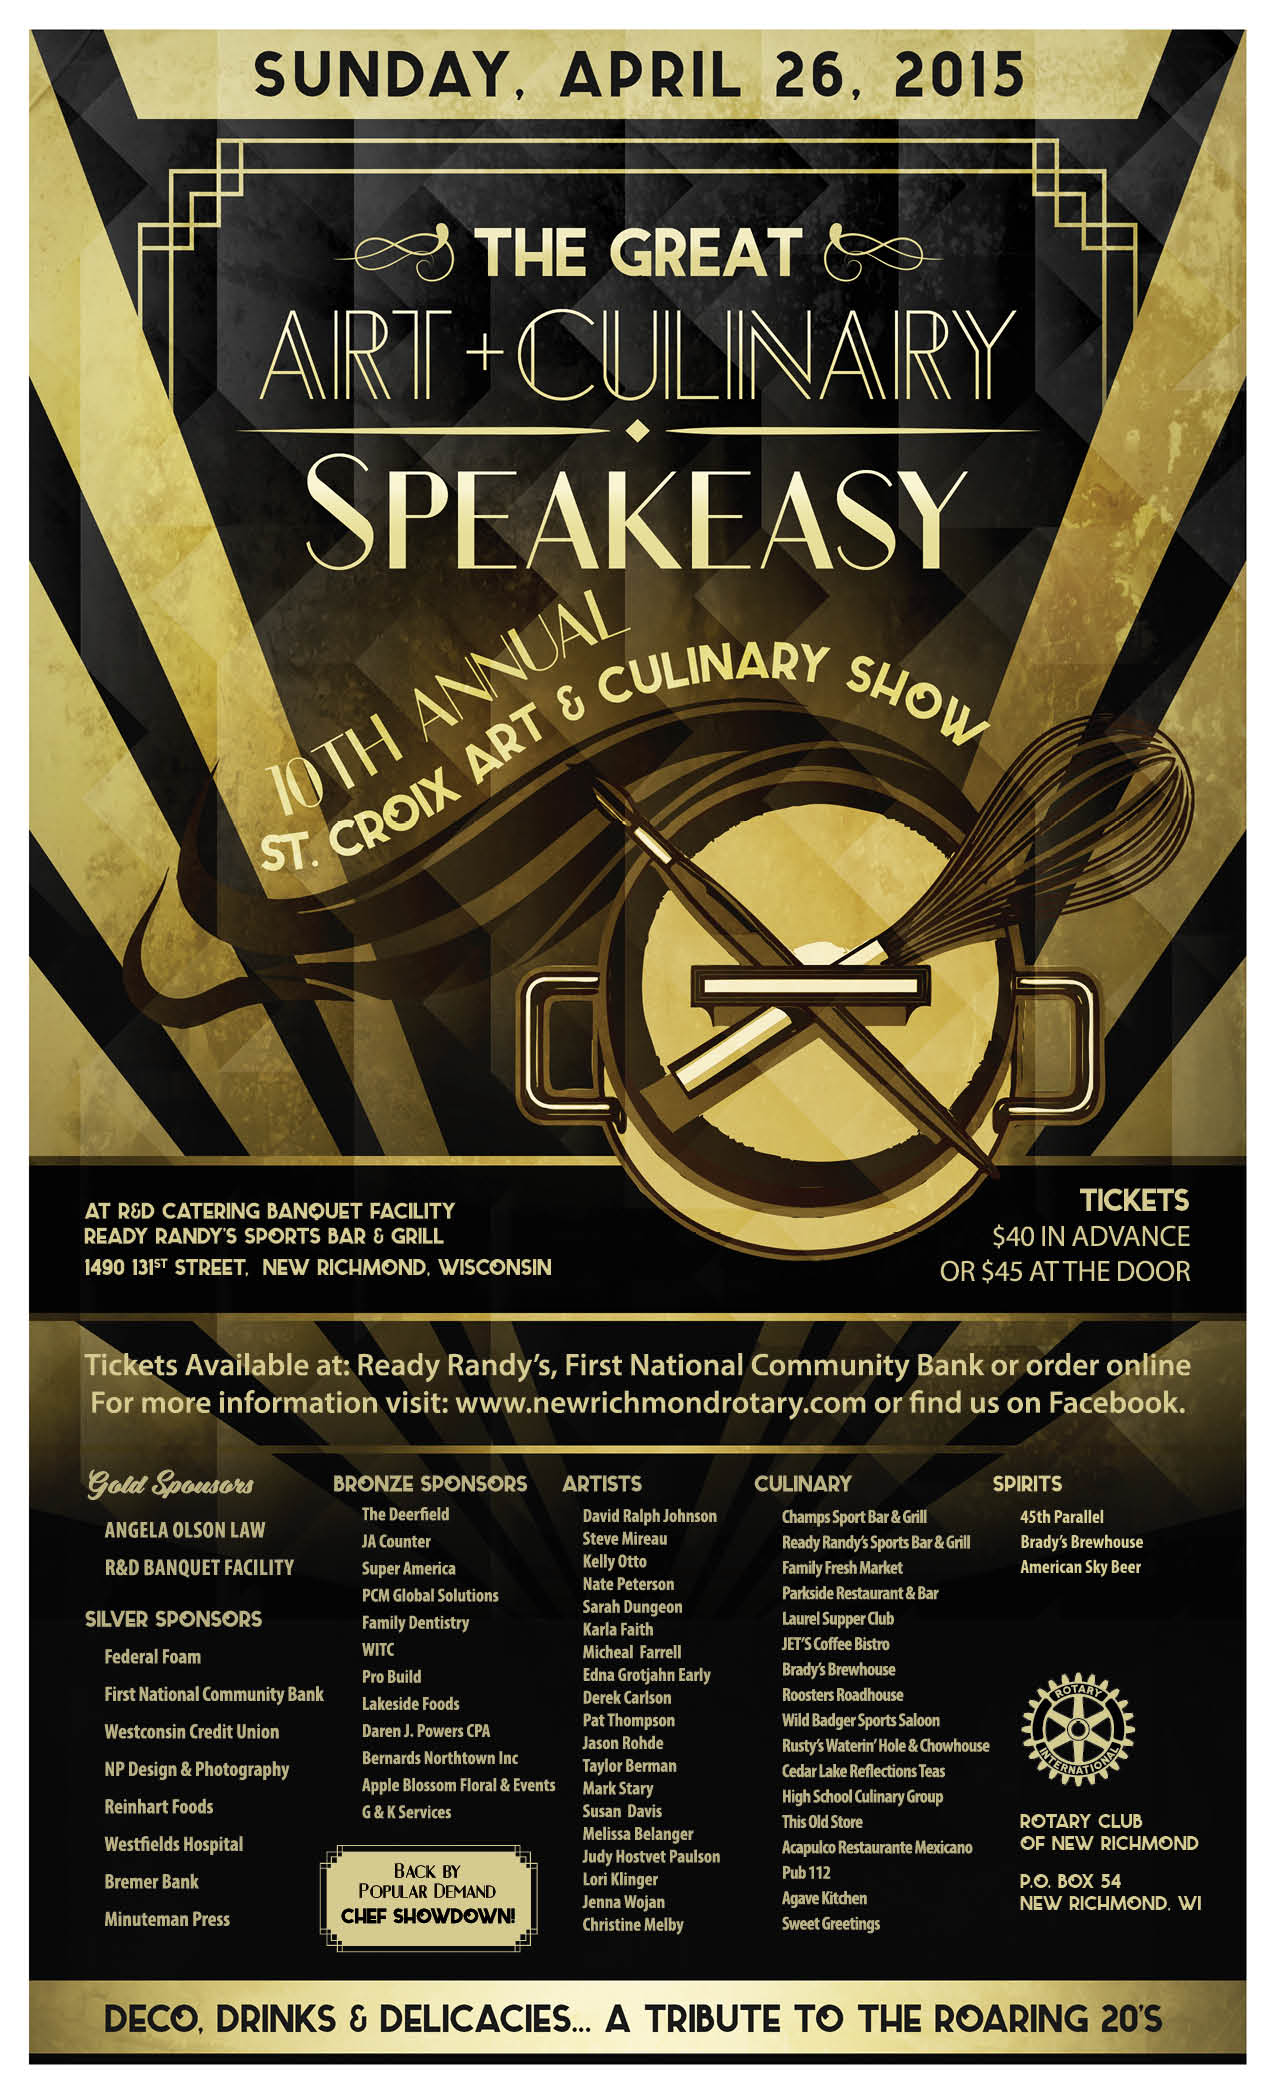 Legal Poster for St. Croix Art & Culinary Show 2015